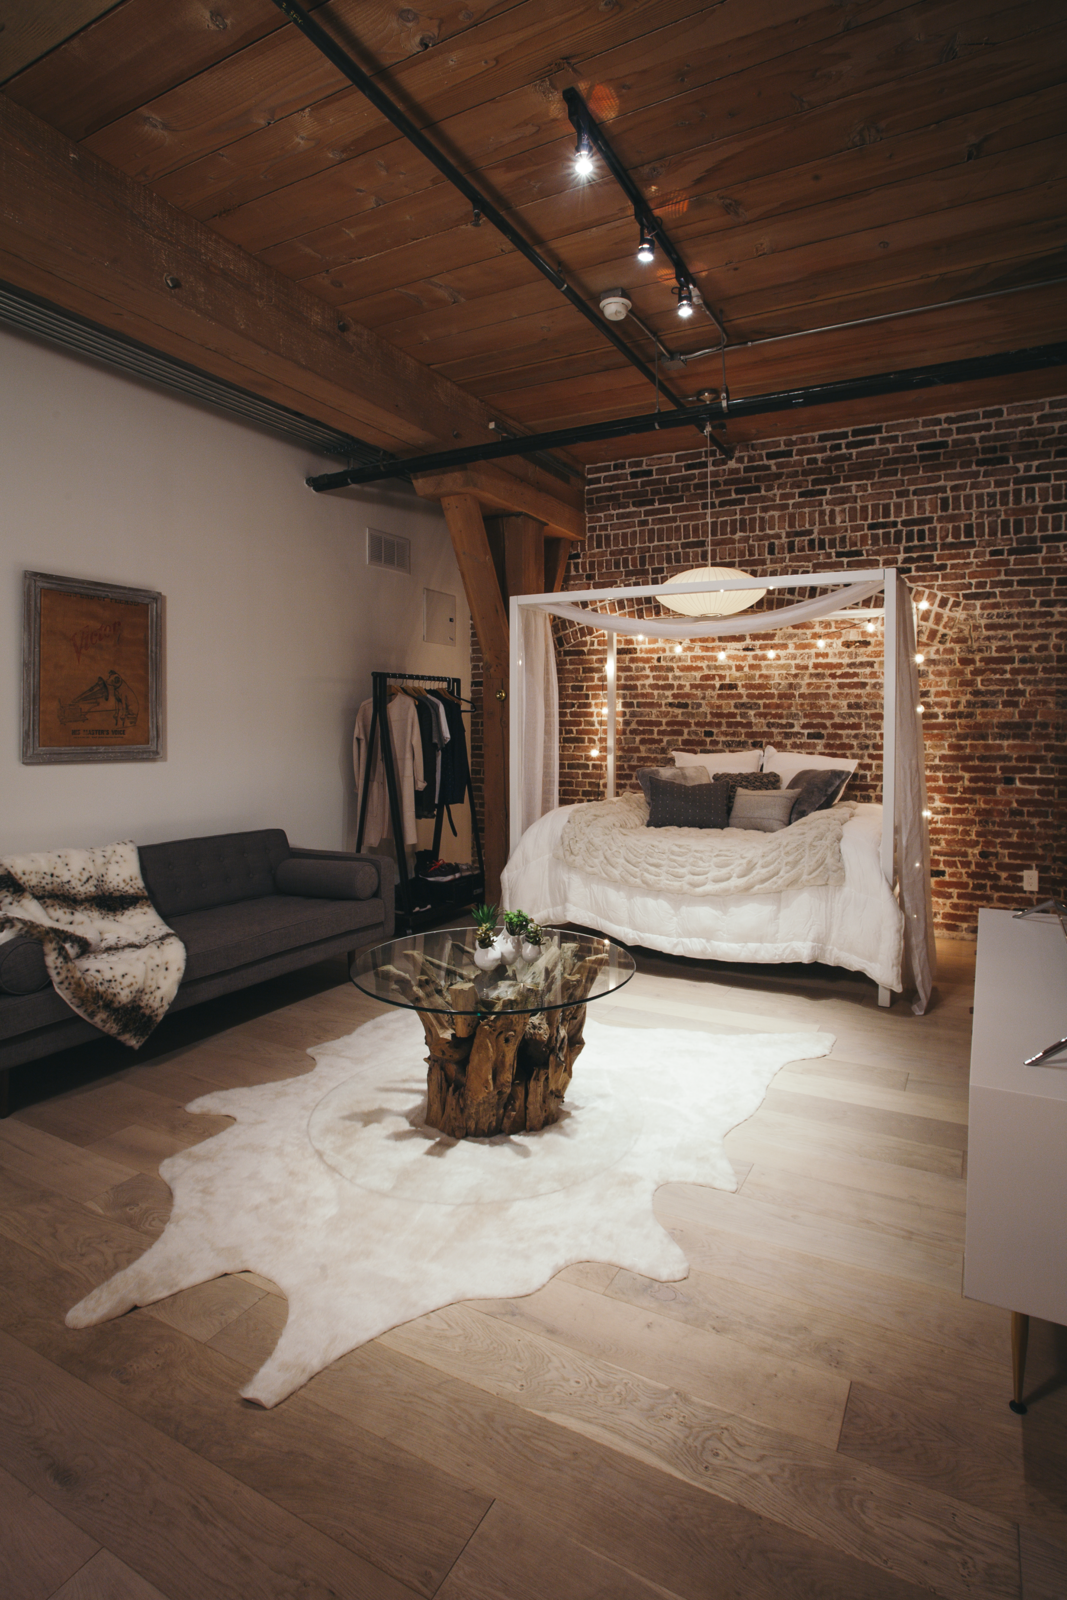 The sleeping area is tucked into the back of the loft. Says Misra of the clients,  Photo 9 of 10 in Step Inside One Couple's Game-Changing Live/Work Loft